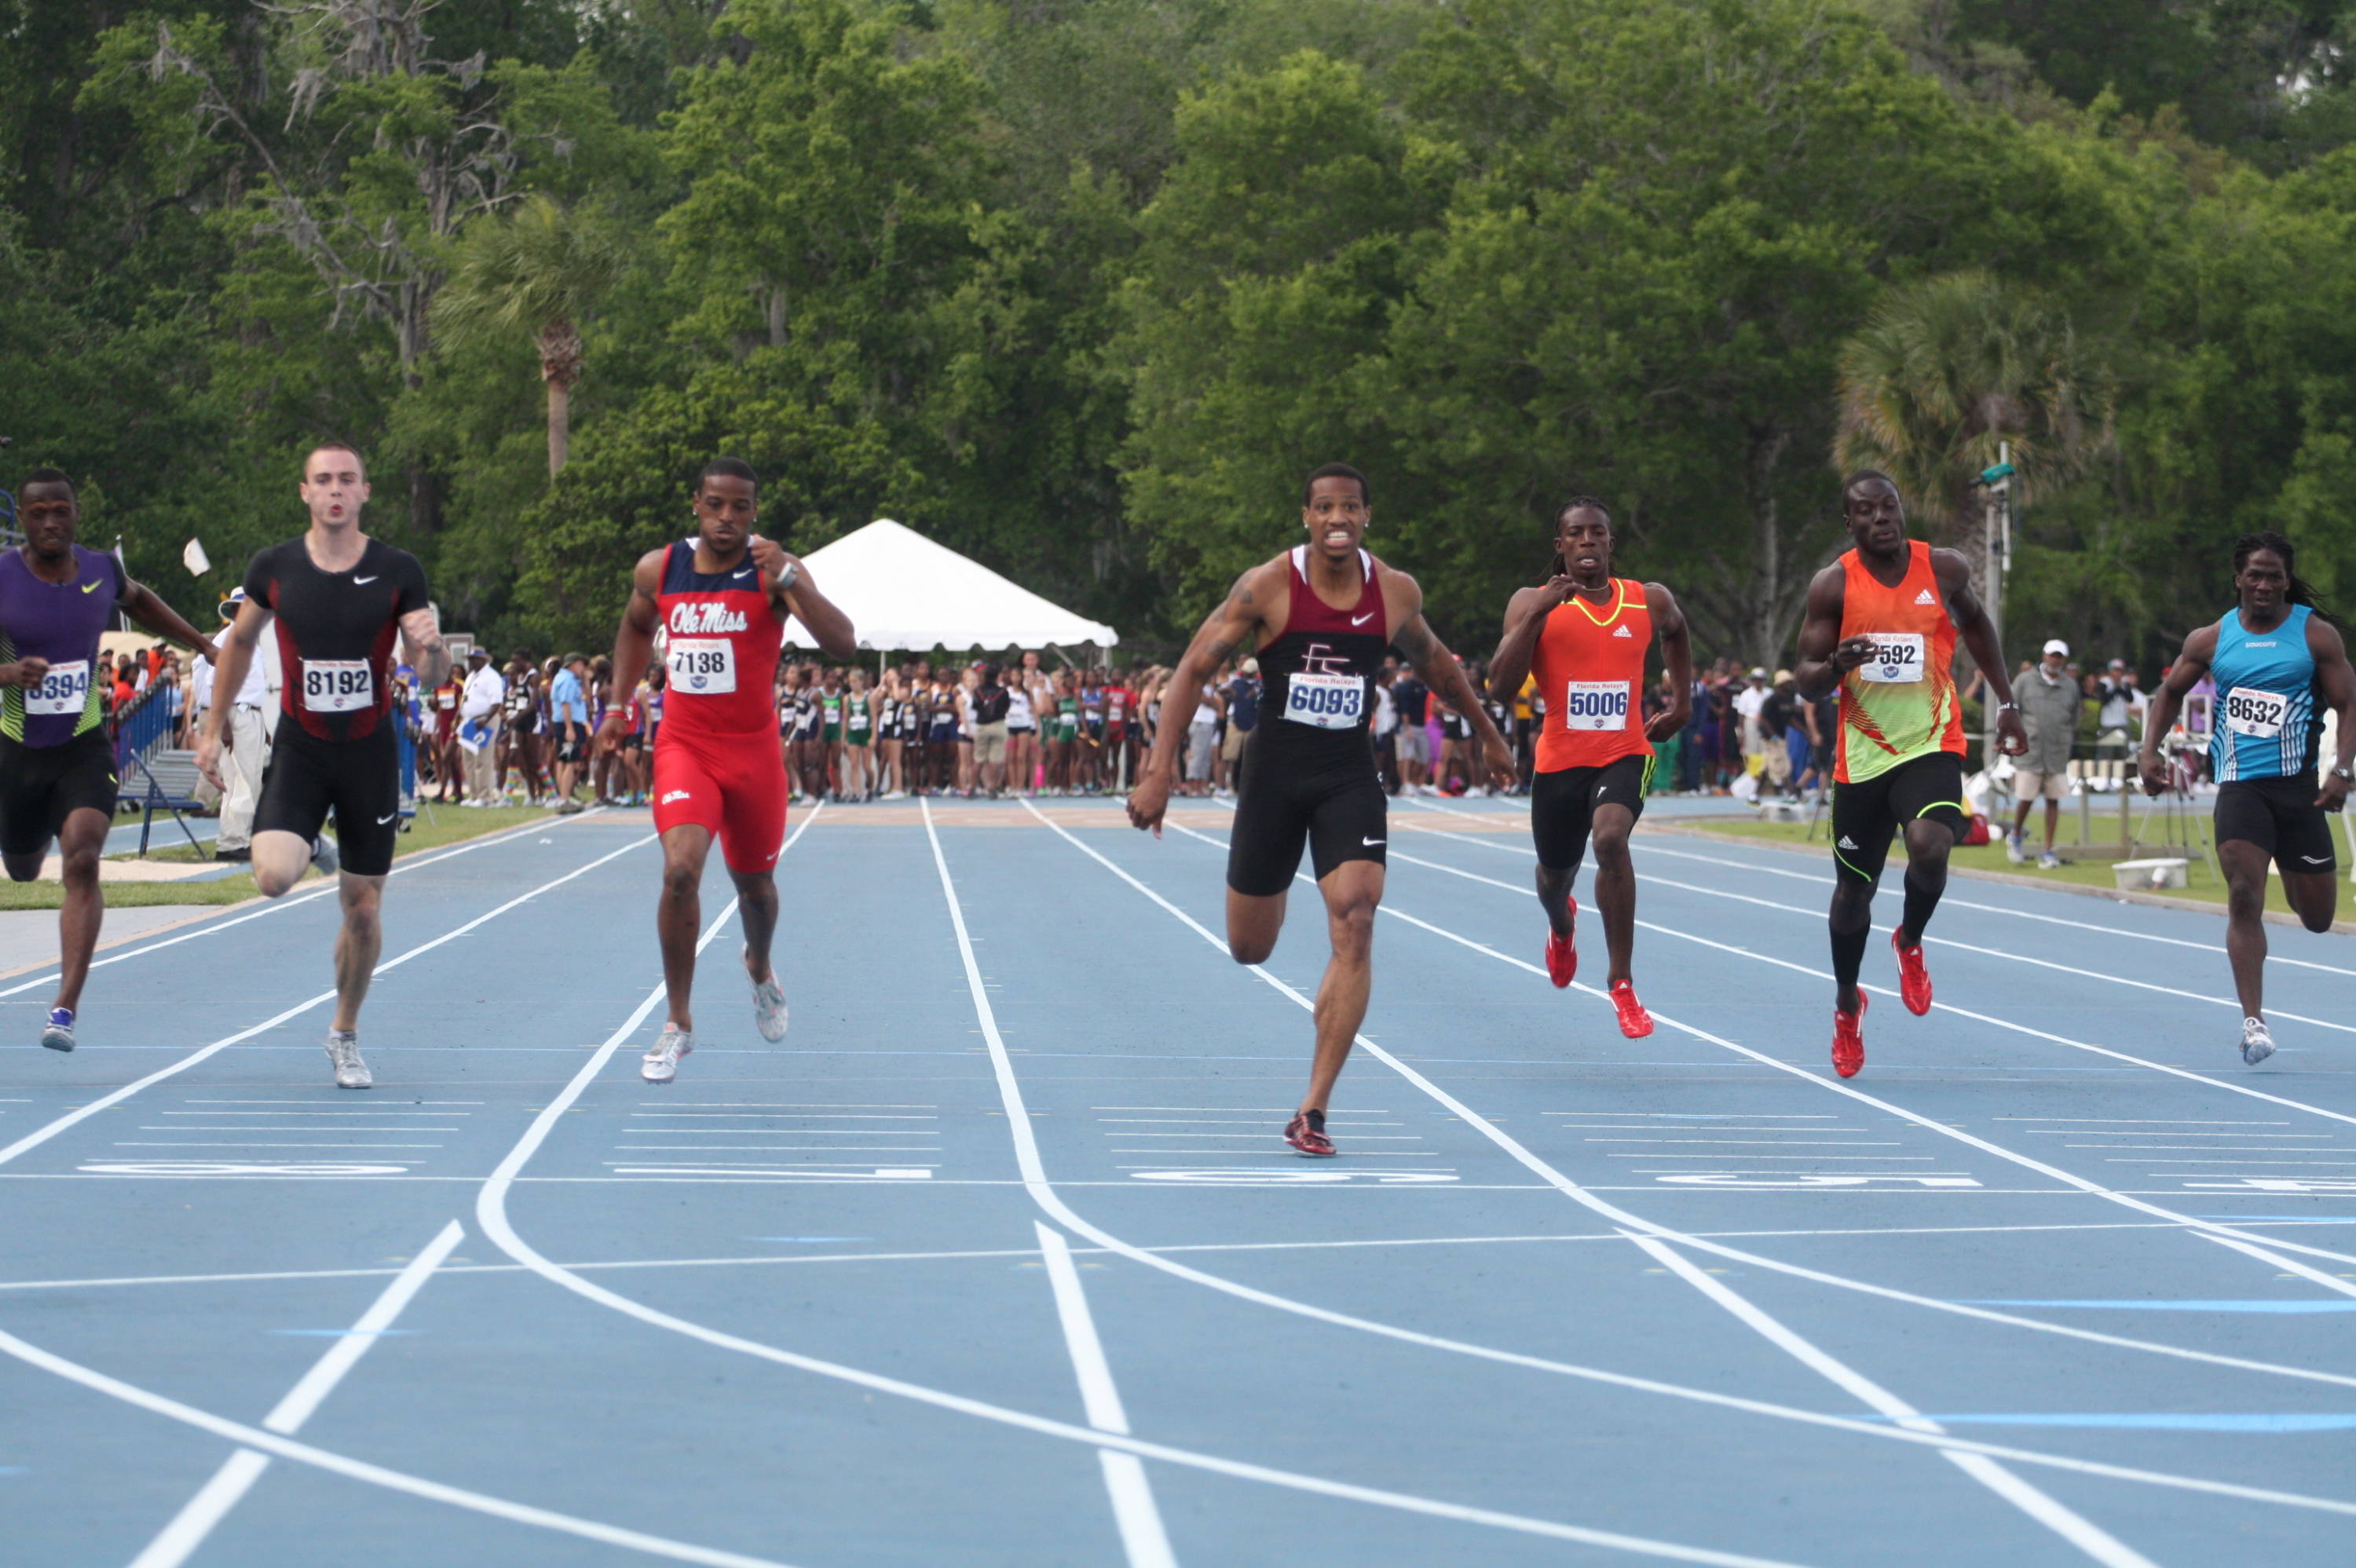 Maurice Williams blows away the field in the 200-meter dash, winning the title in a nation-leading 20.08